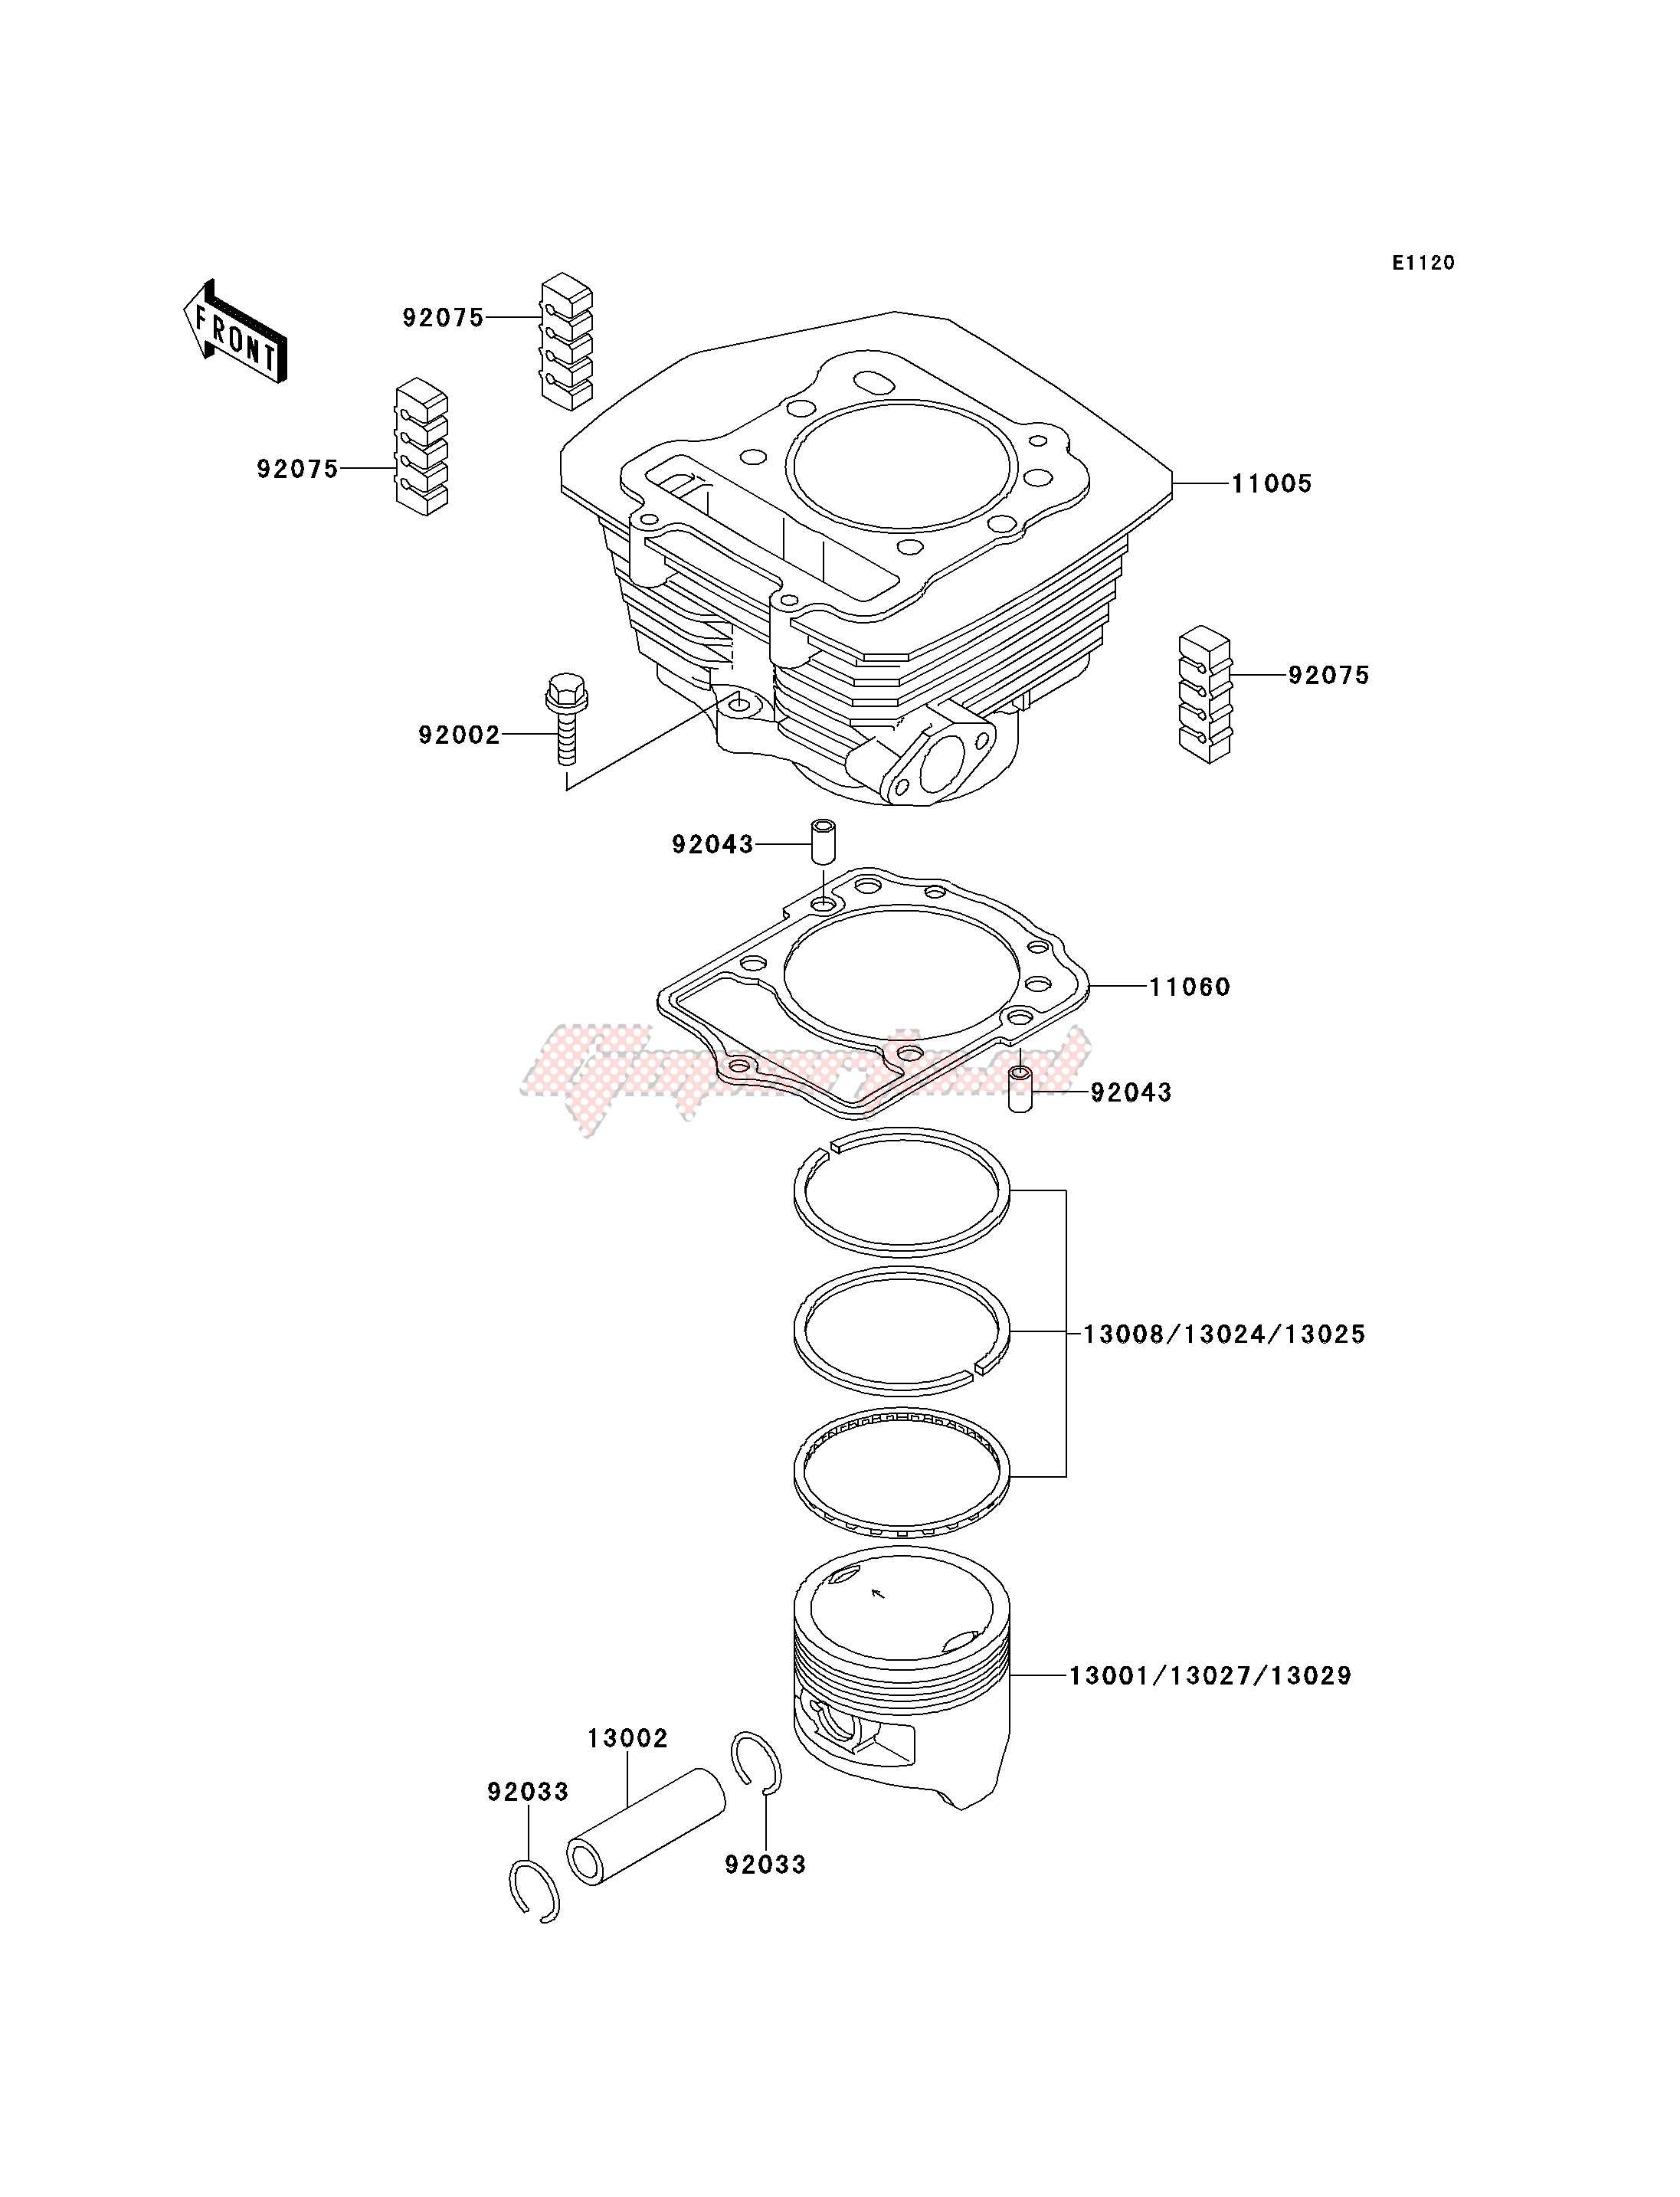 Engine-CYLINDER_PISTON-- S- -